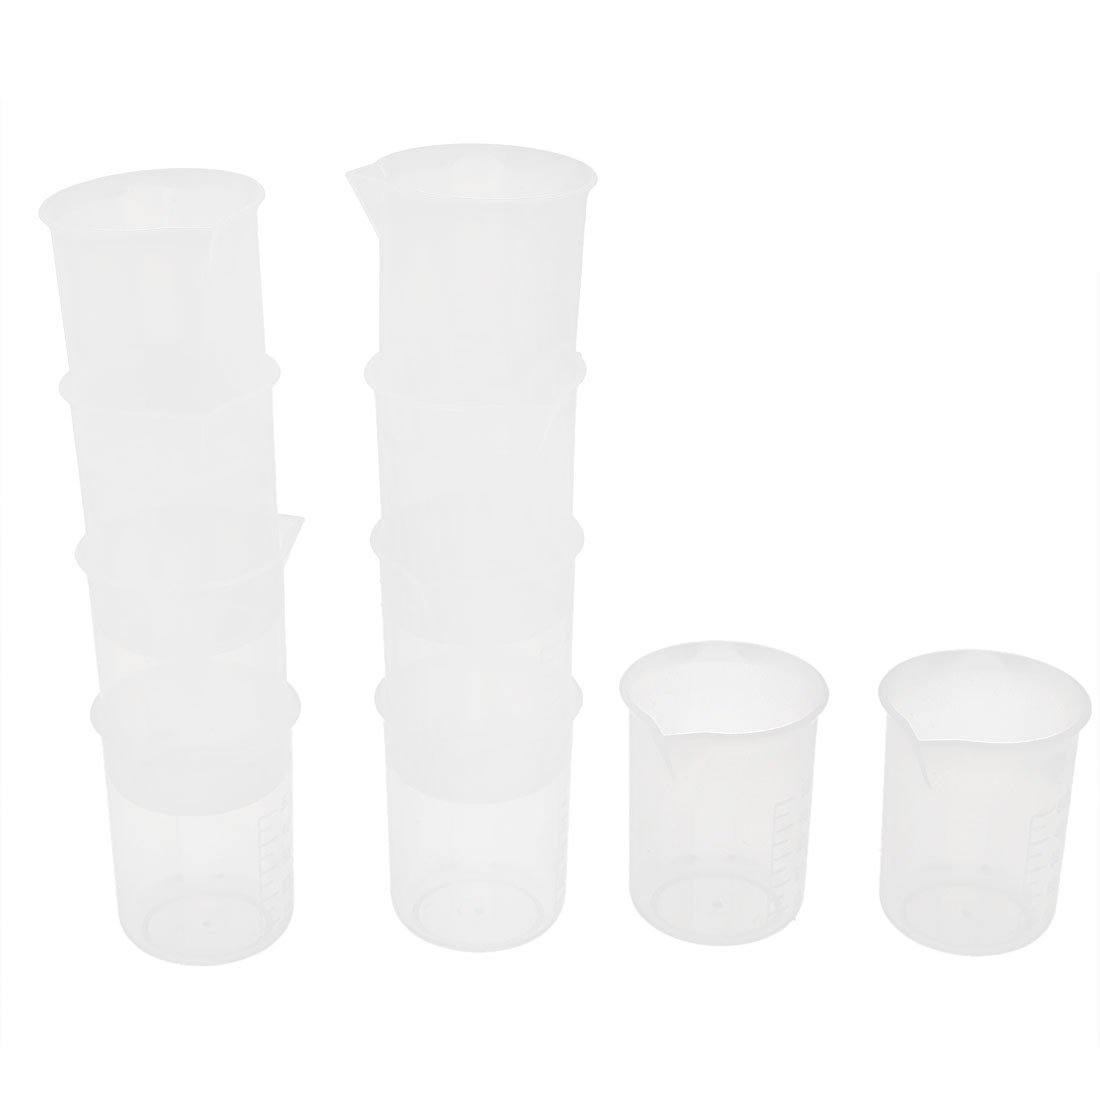 10pcs 50mL 1.7oZ Plastic Graduated Liquid Measuring Beaker Testing Cup for Lab Kitchen